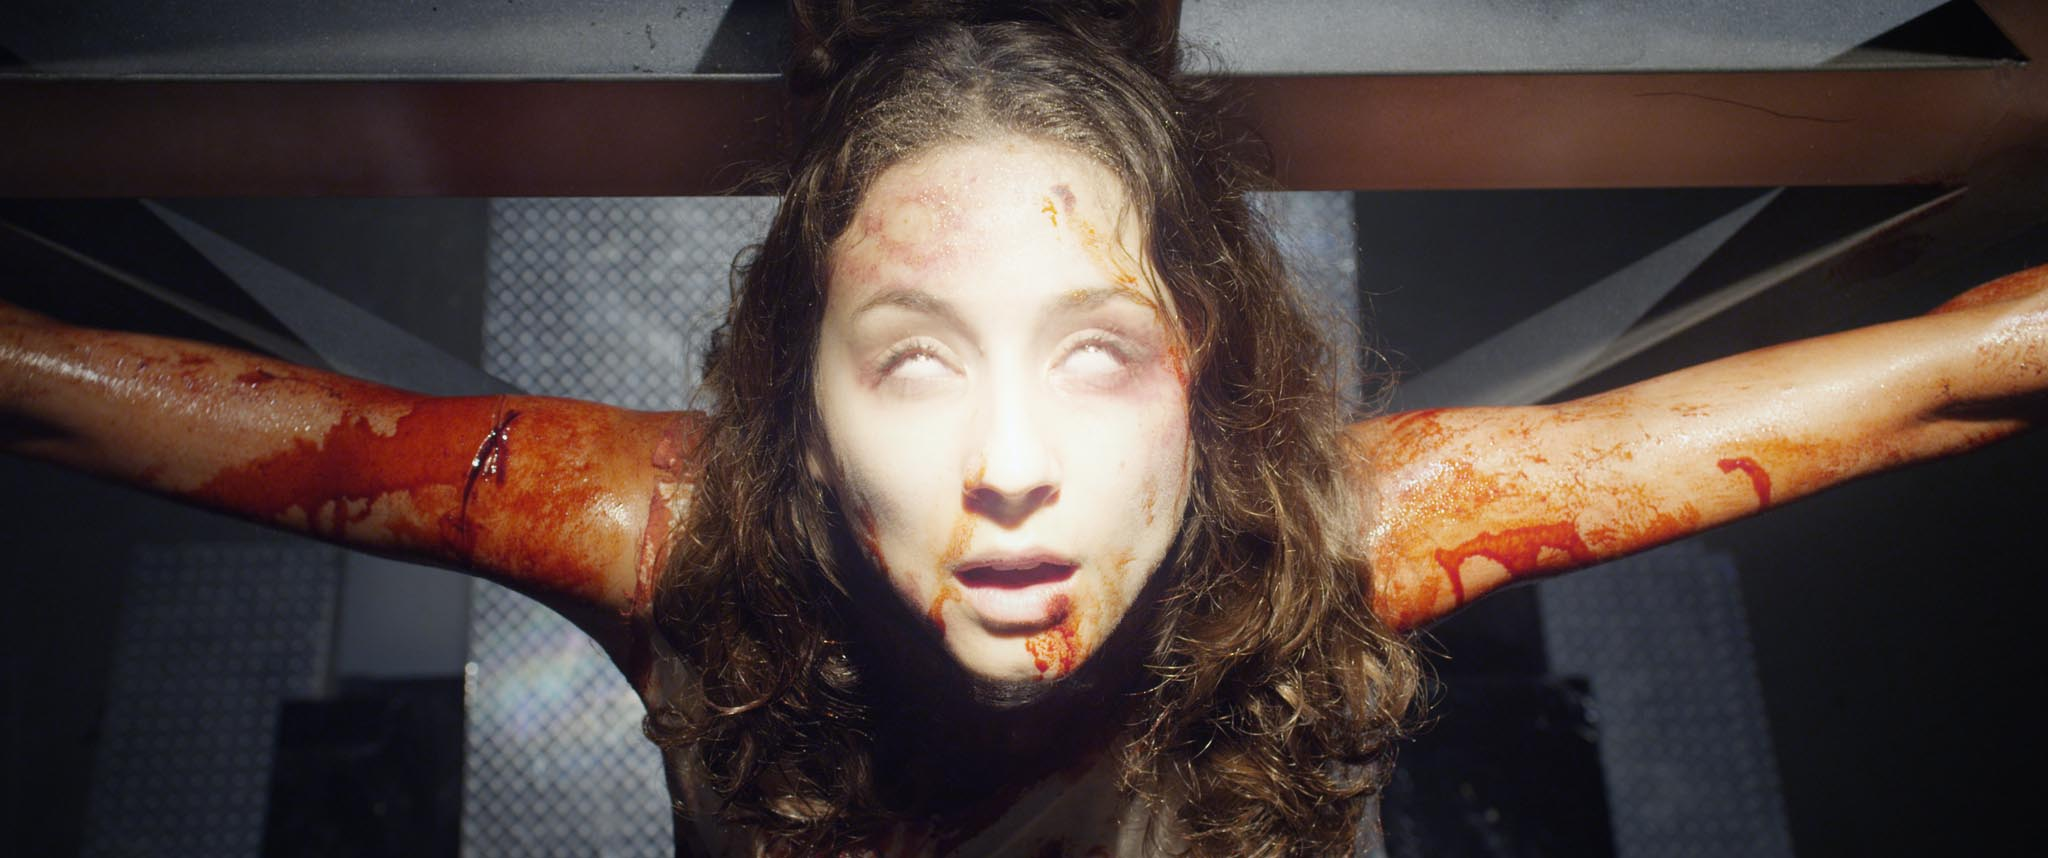 martyrs - Screamfest 2015 Film Lineup Revealed; Premiere of Martyrs Remake